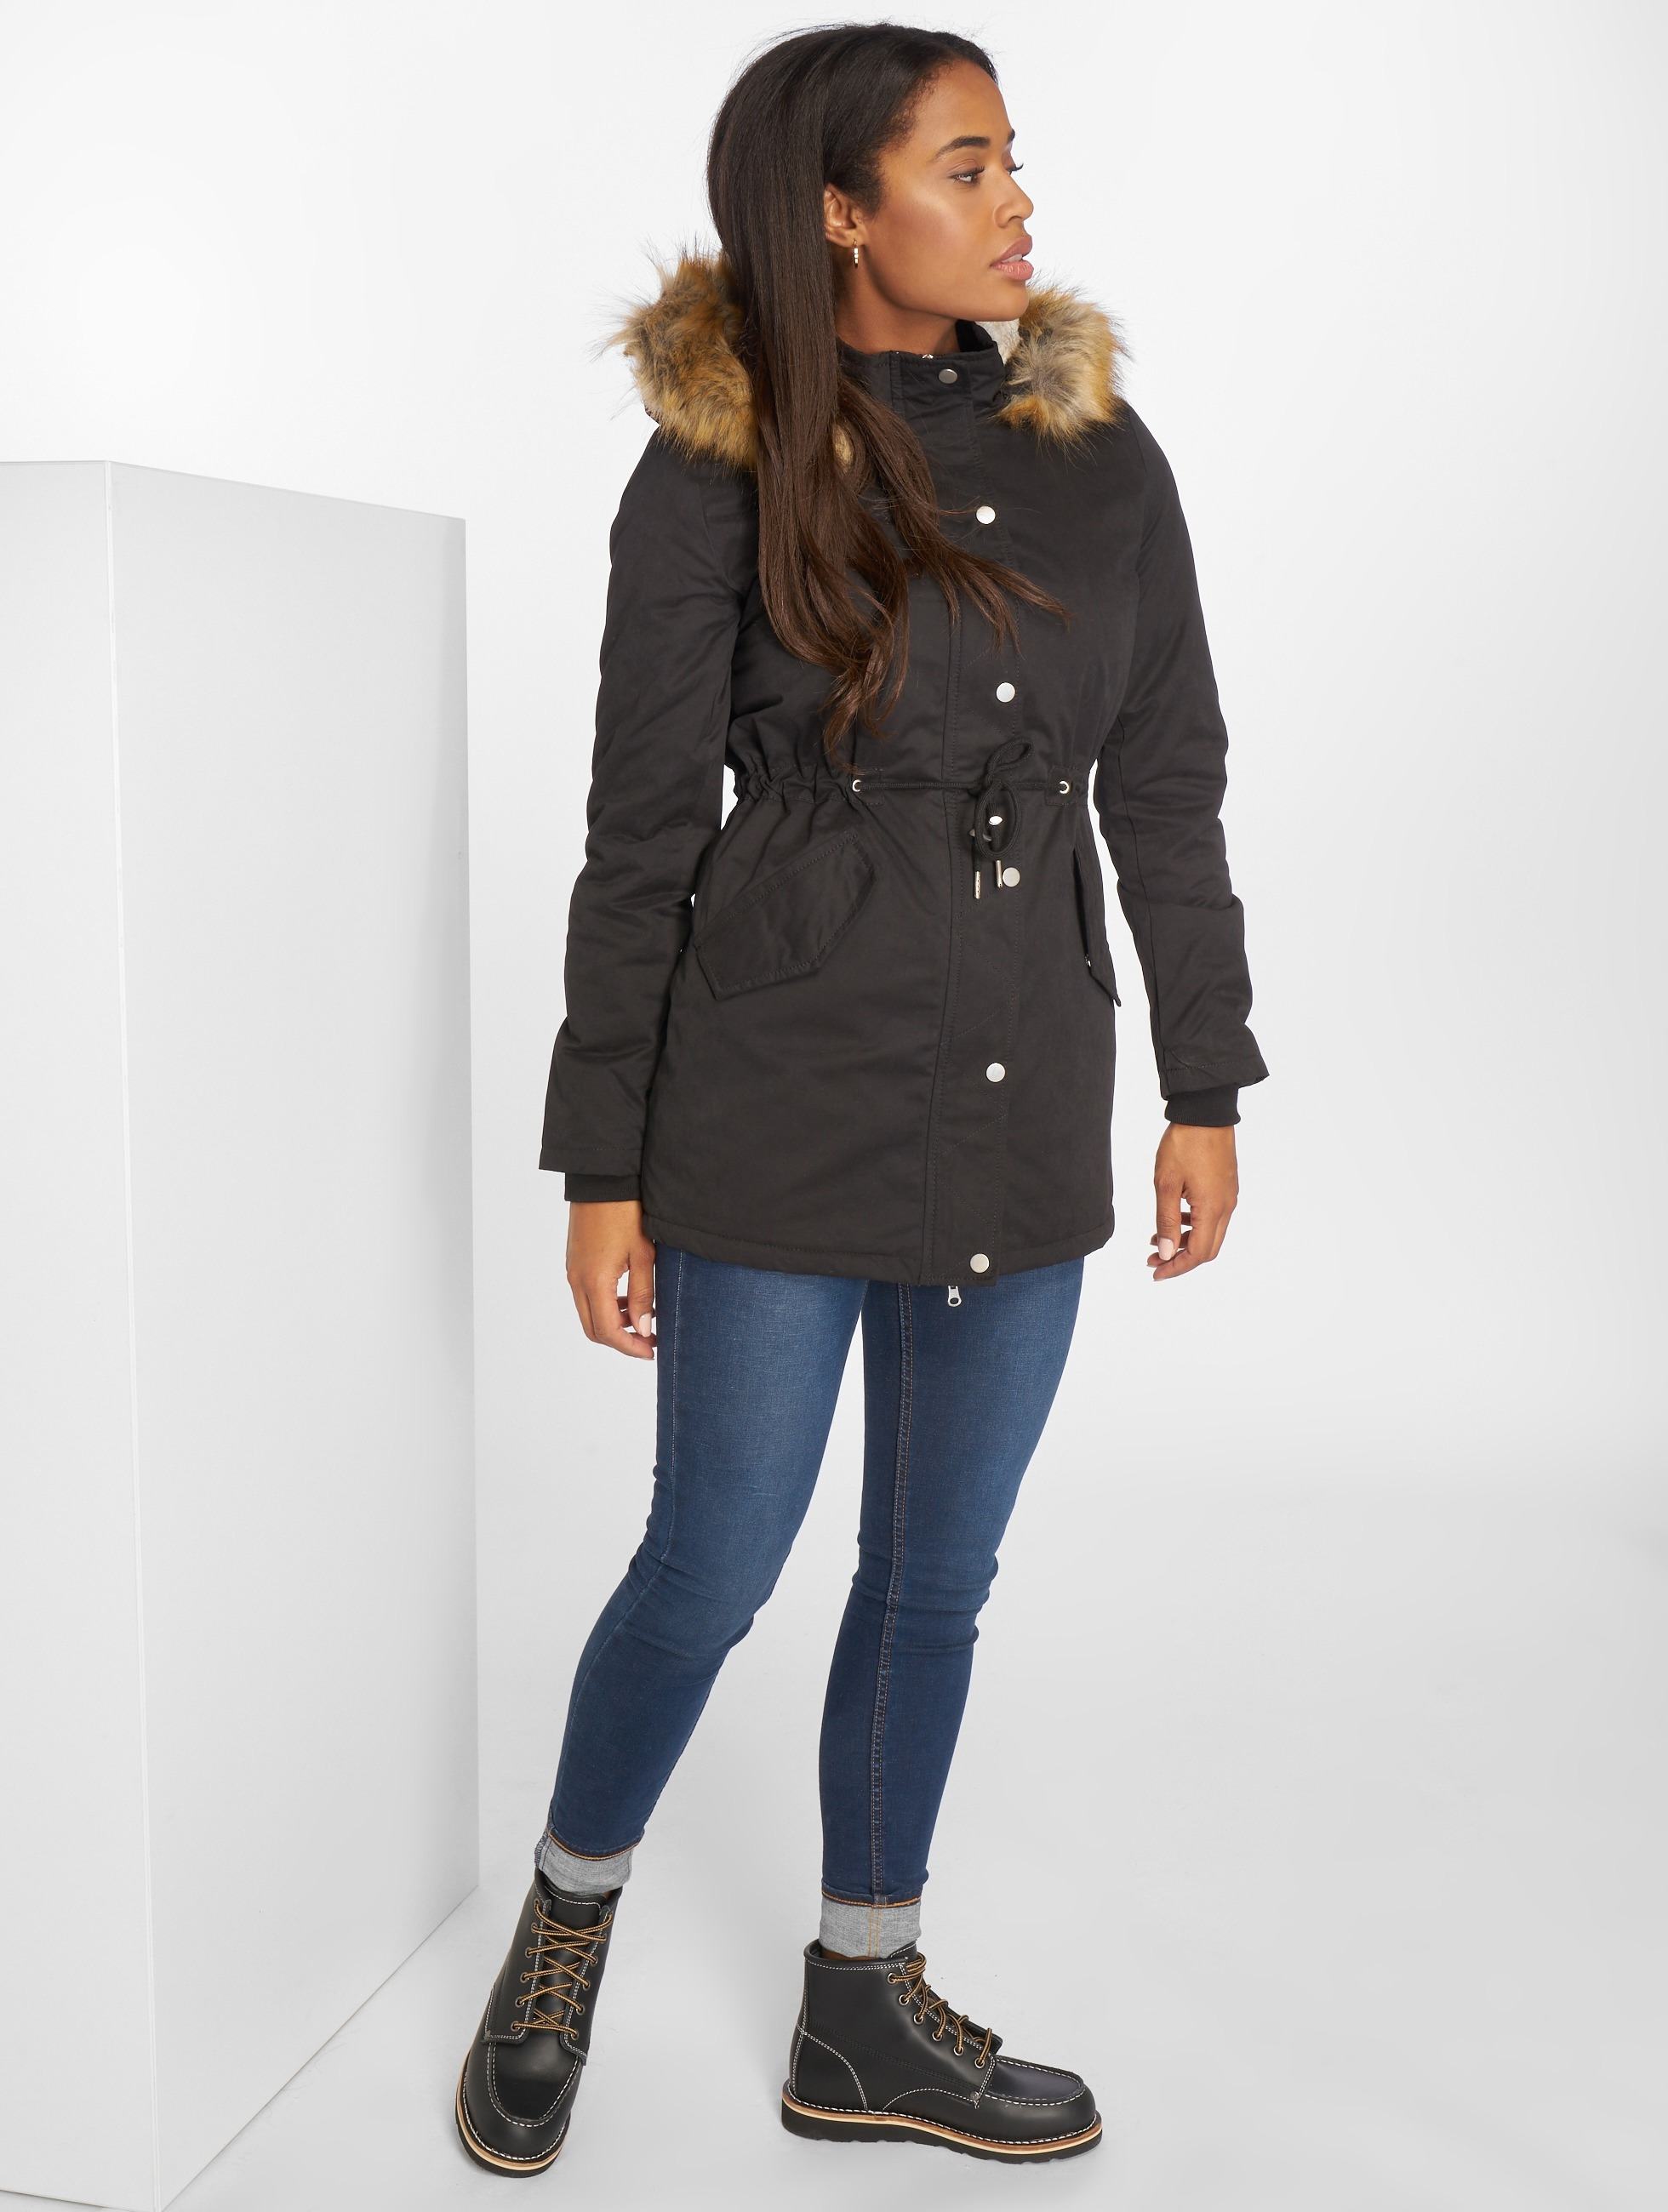 Urban Classics Winter Jacket Ladies Sherpa Lined Peached black